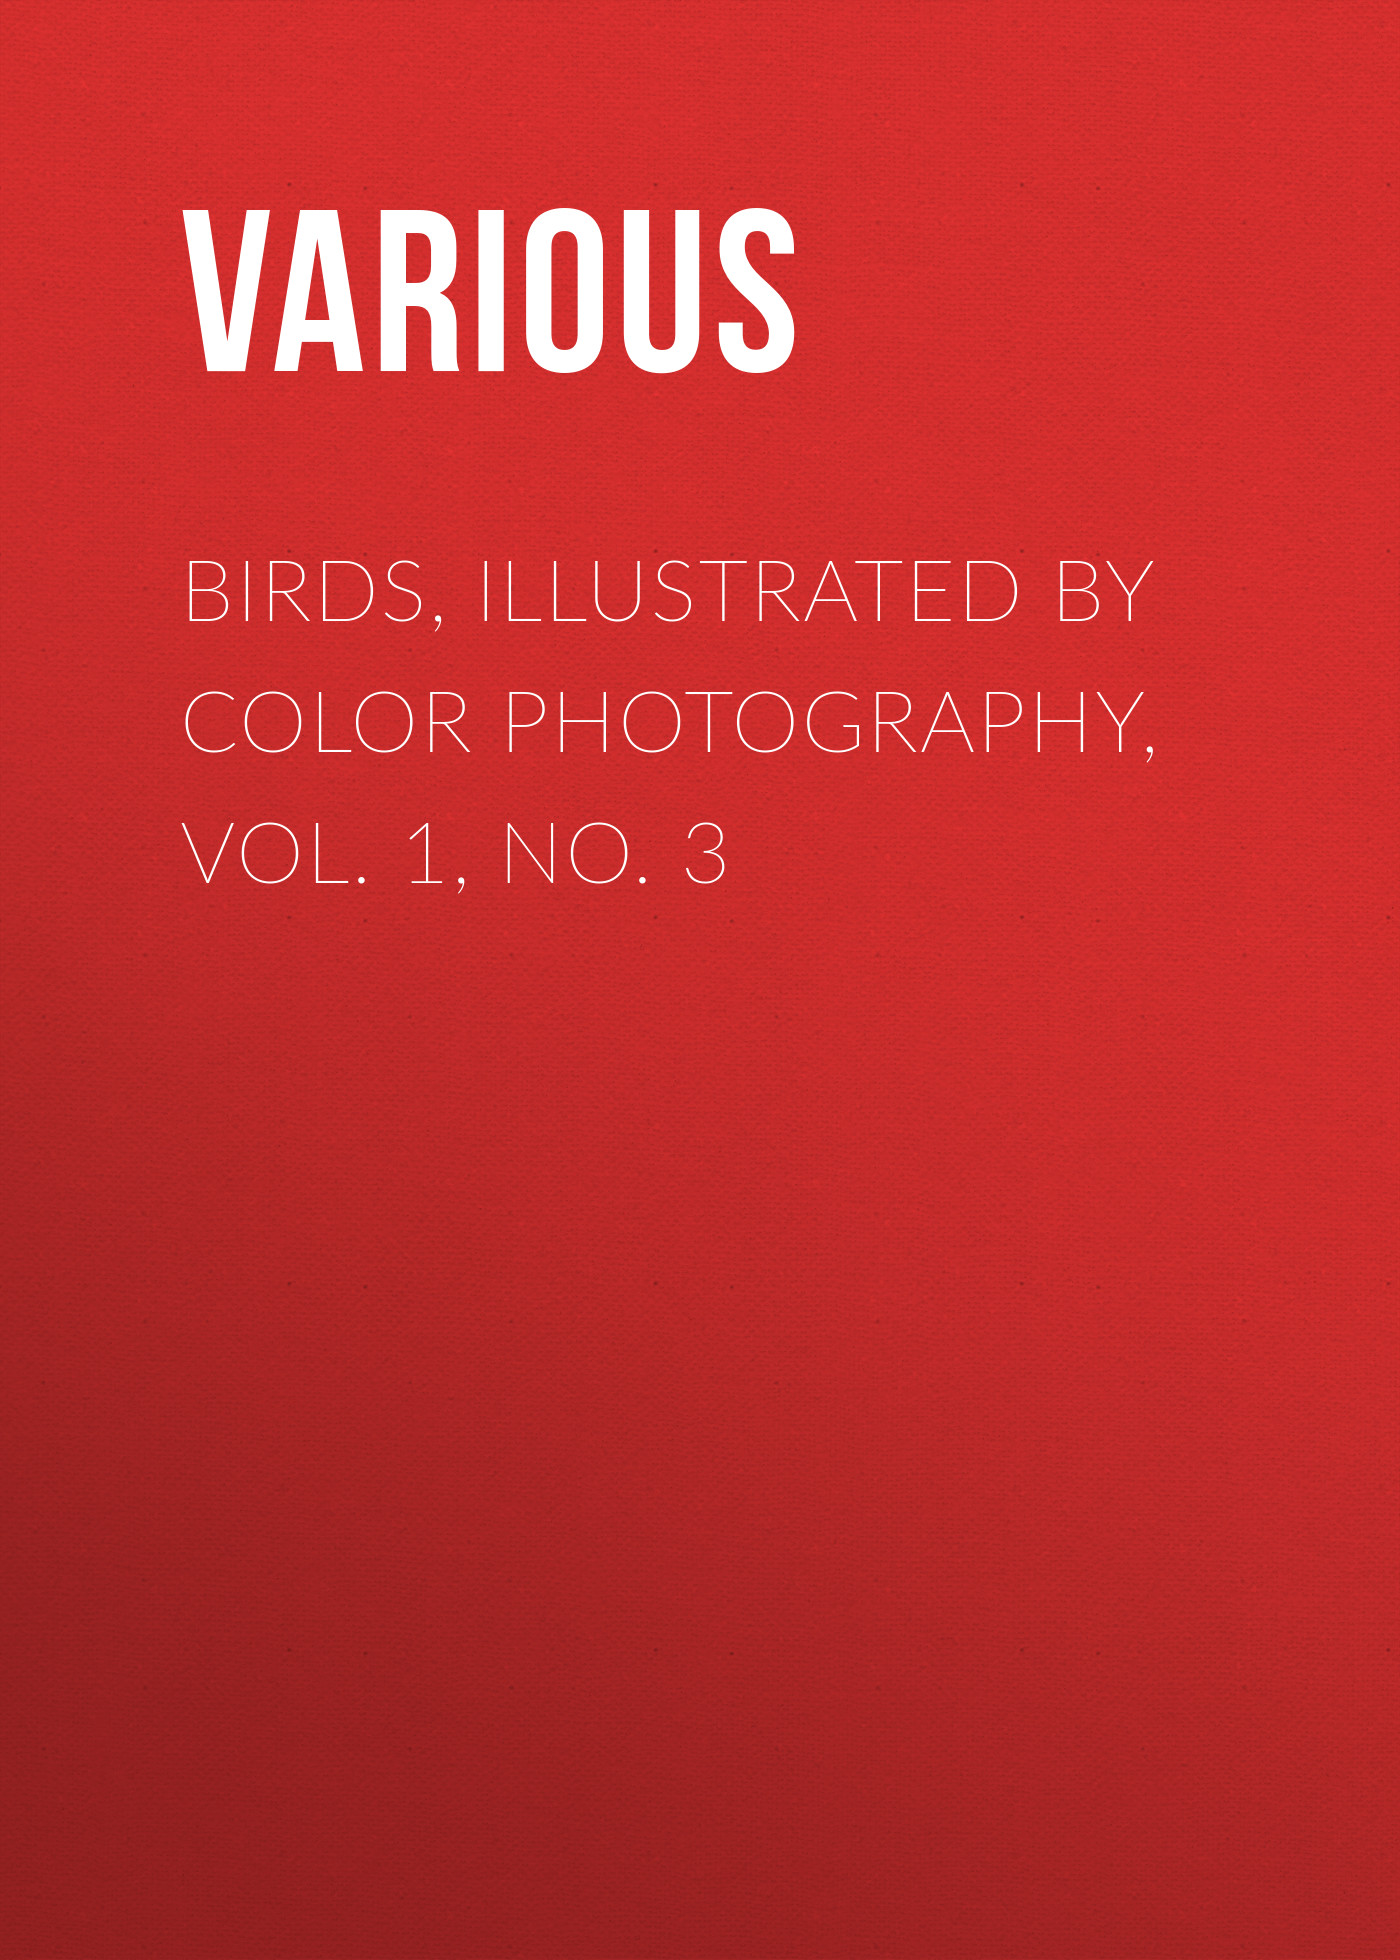 Various Birds, Illustrated by Color Photography, Vol. 1, No. 3 чехол флип кейс promate tama i6 чёрный